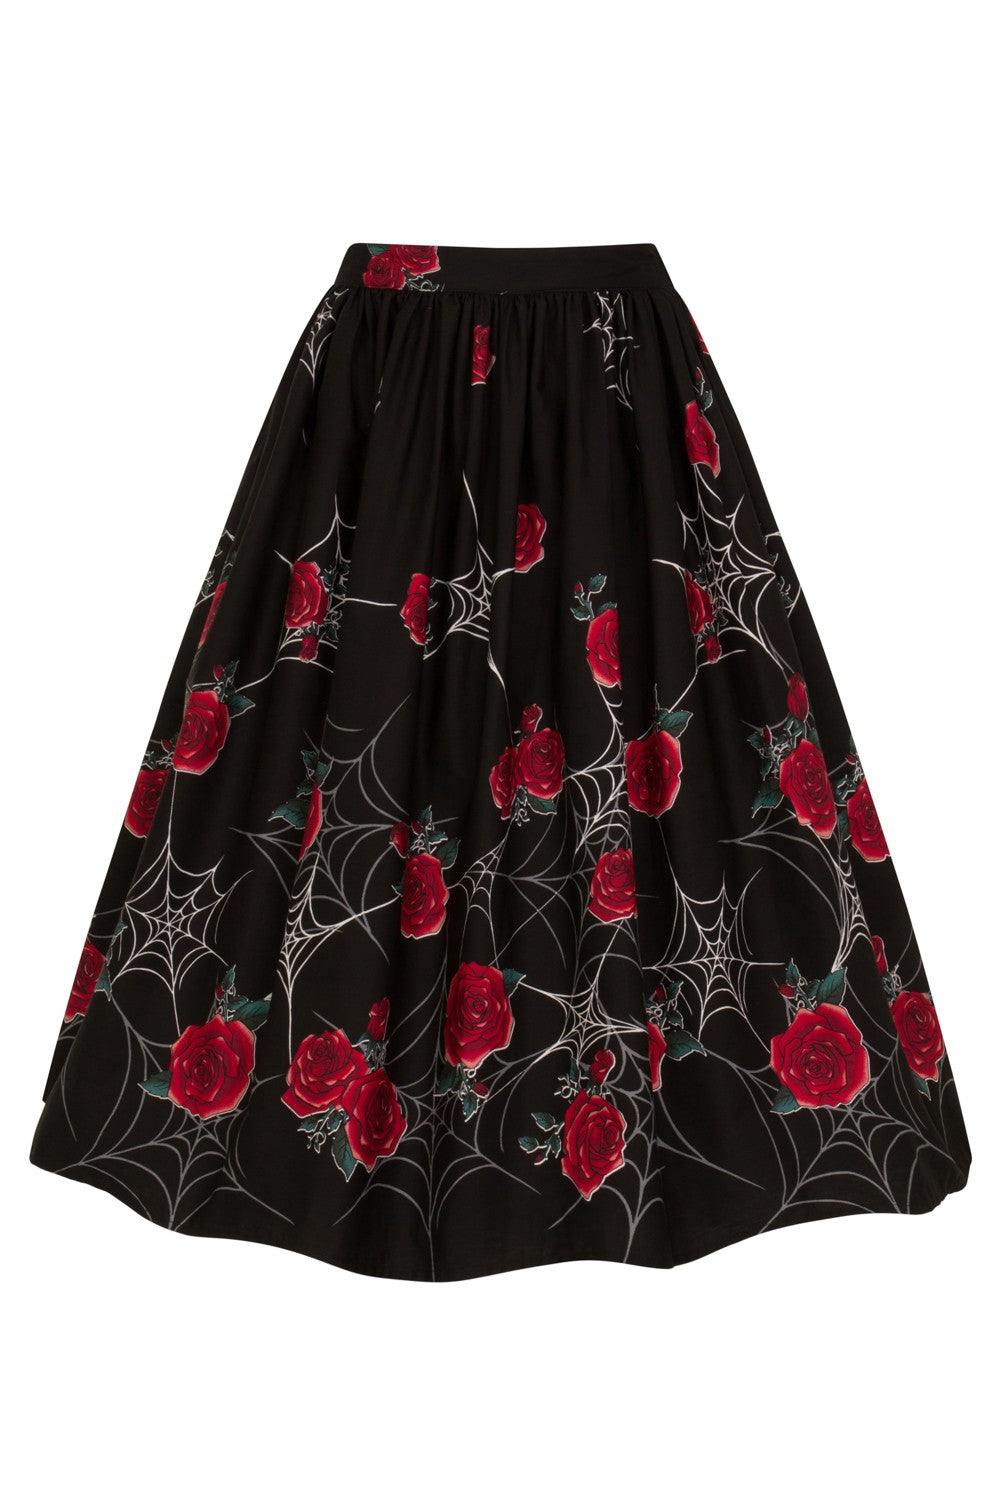 Webs And Roses Sabrina 50s Gathered Swing Skirt Double Trouble Sleeves